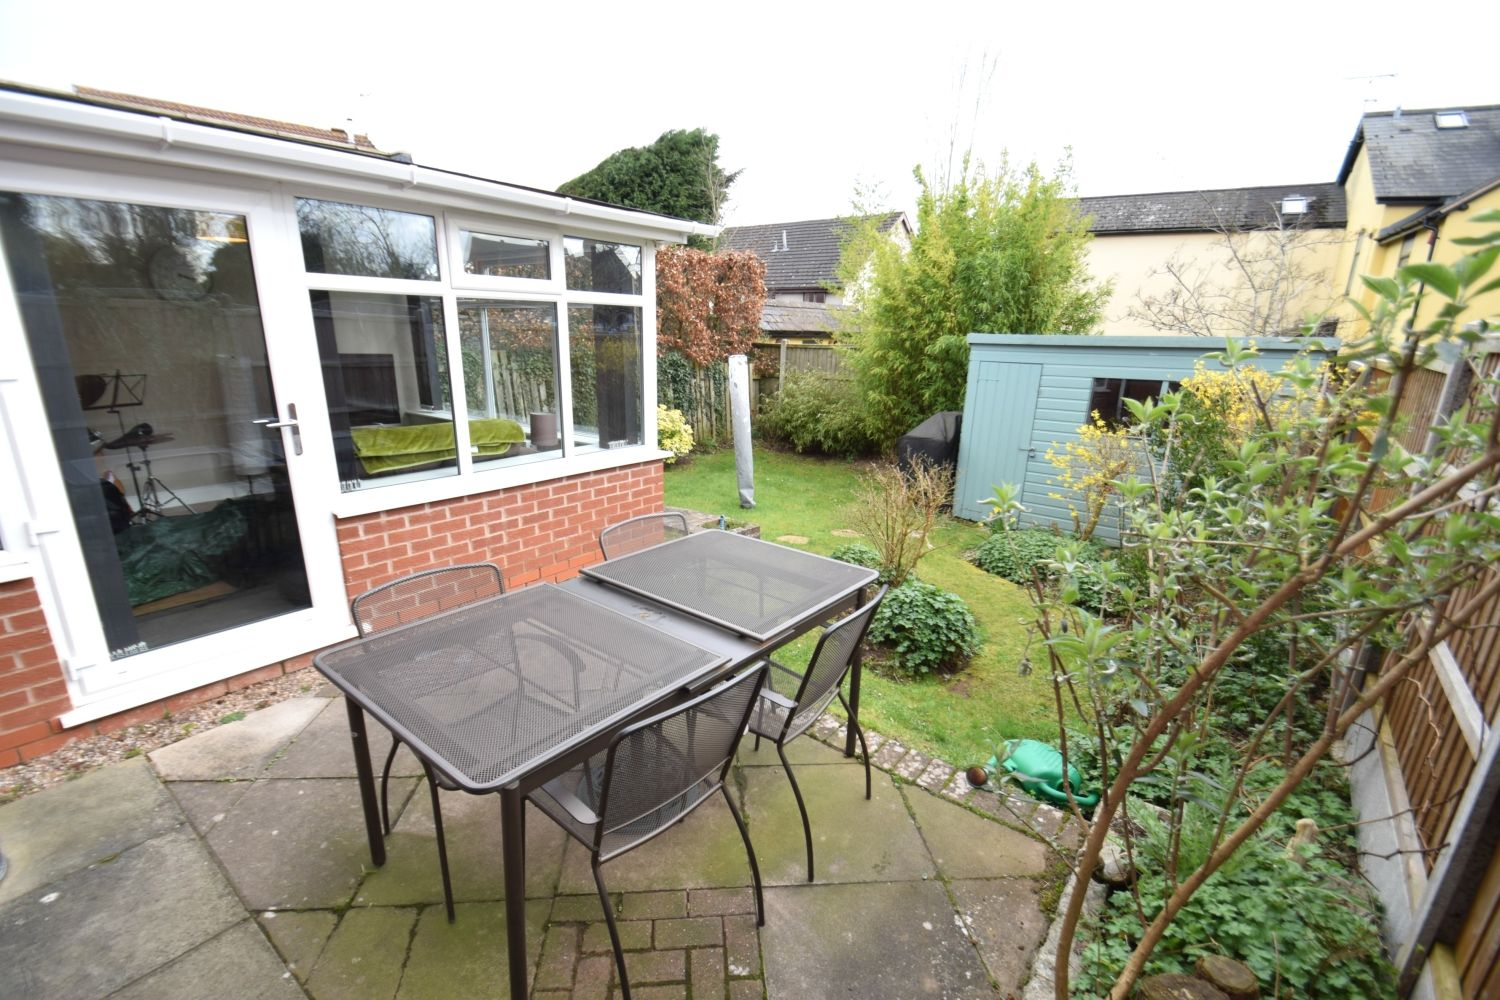 3 bed detached for sale in Foxes Close, Blackwell, B60 21